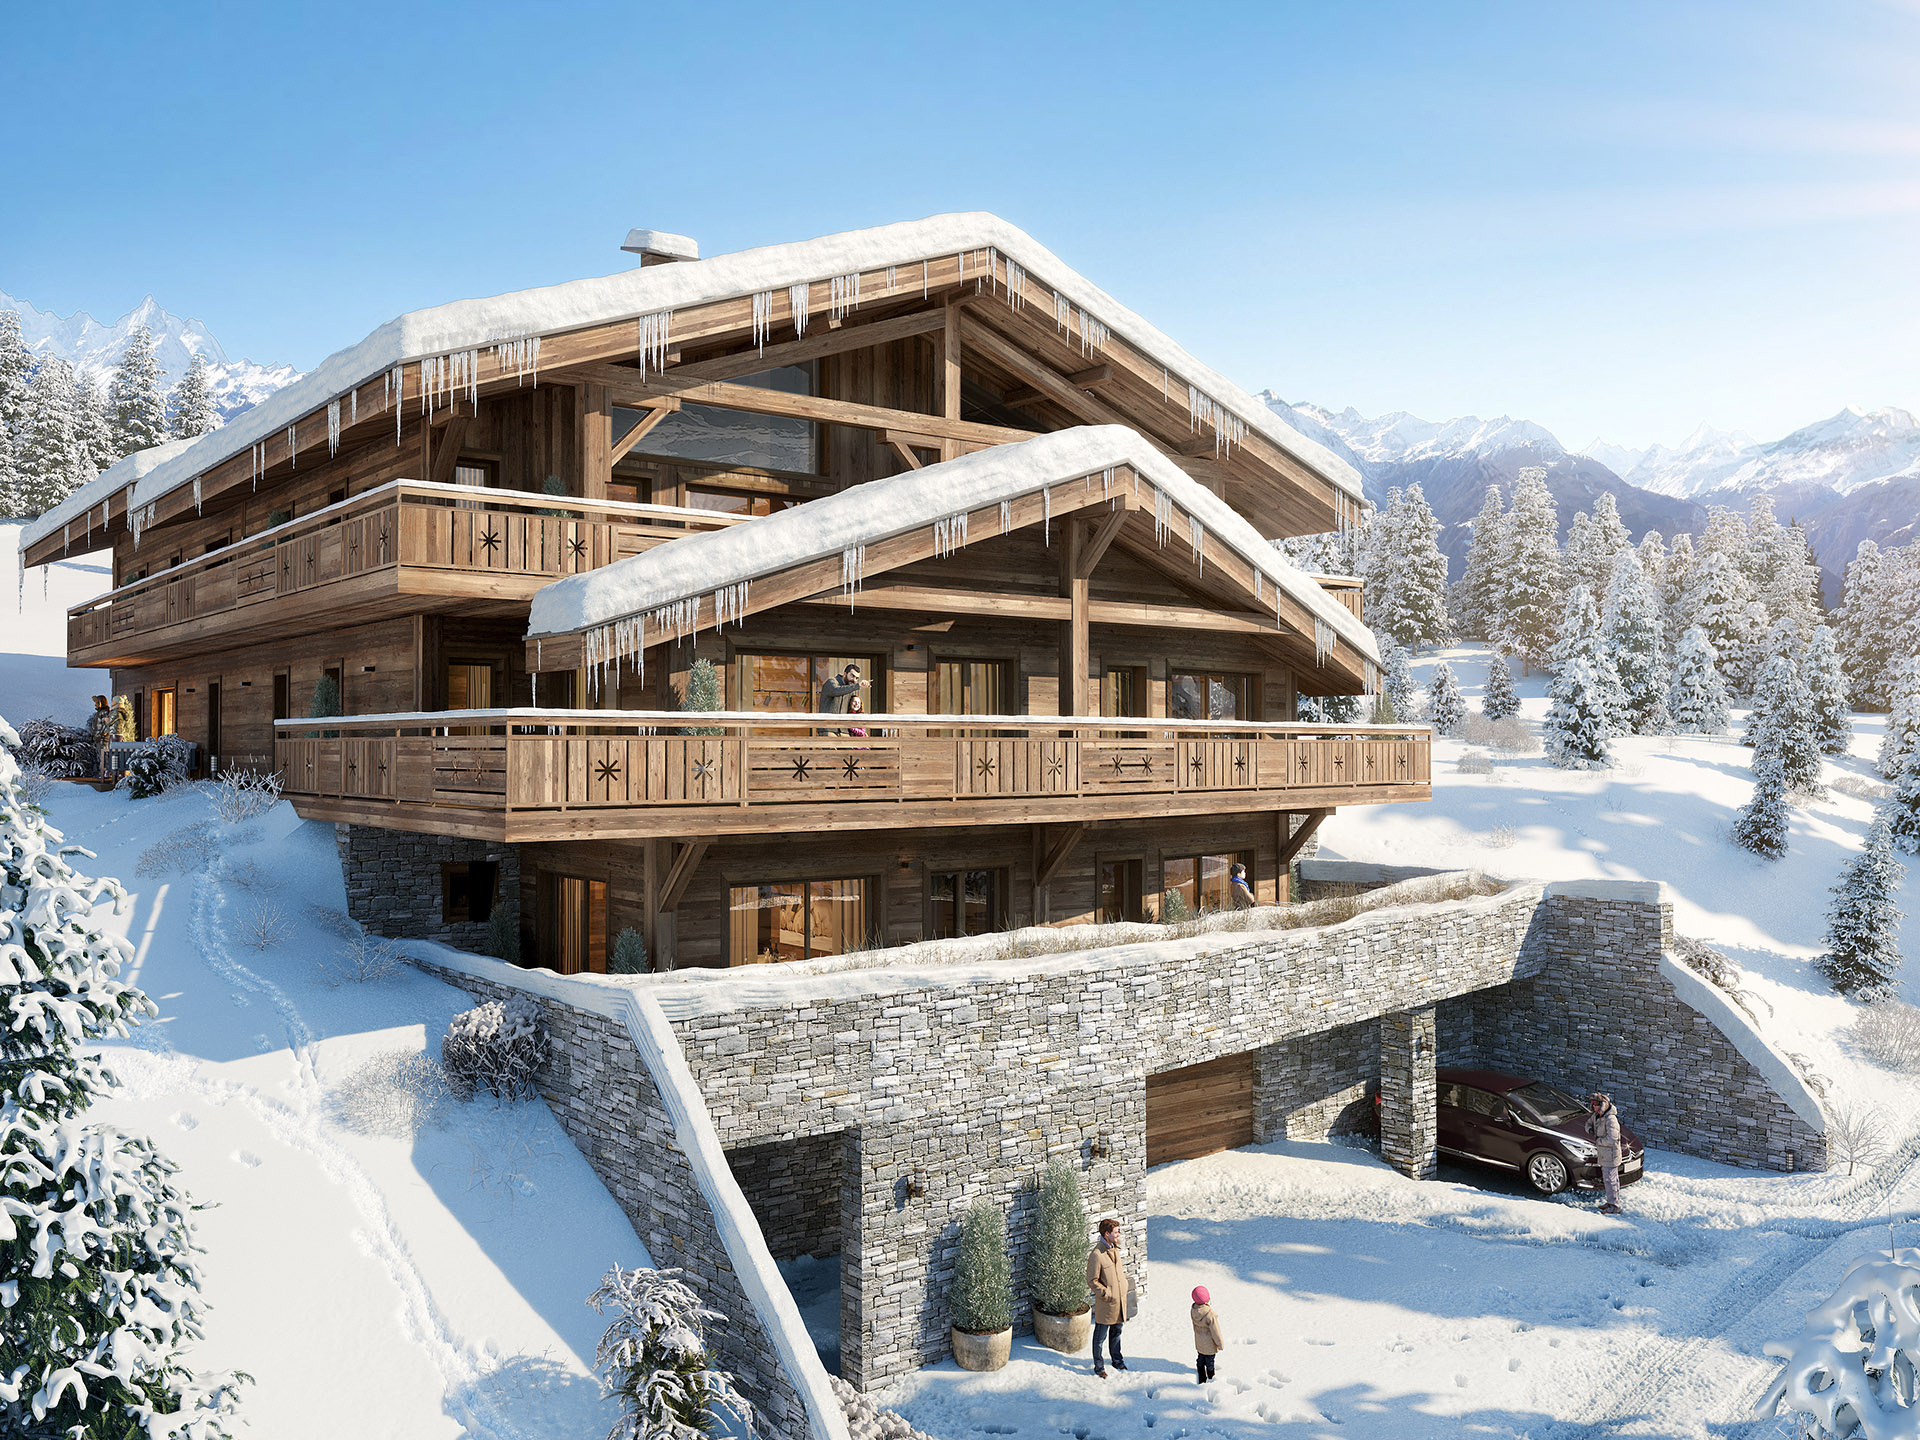 3D visualization of a luxury chalet in winter, in the snowy mountain